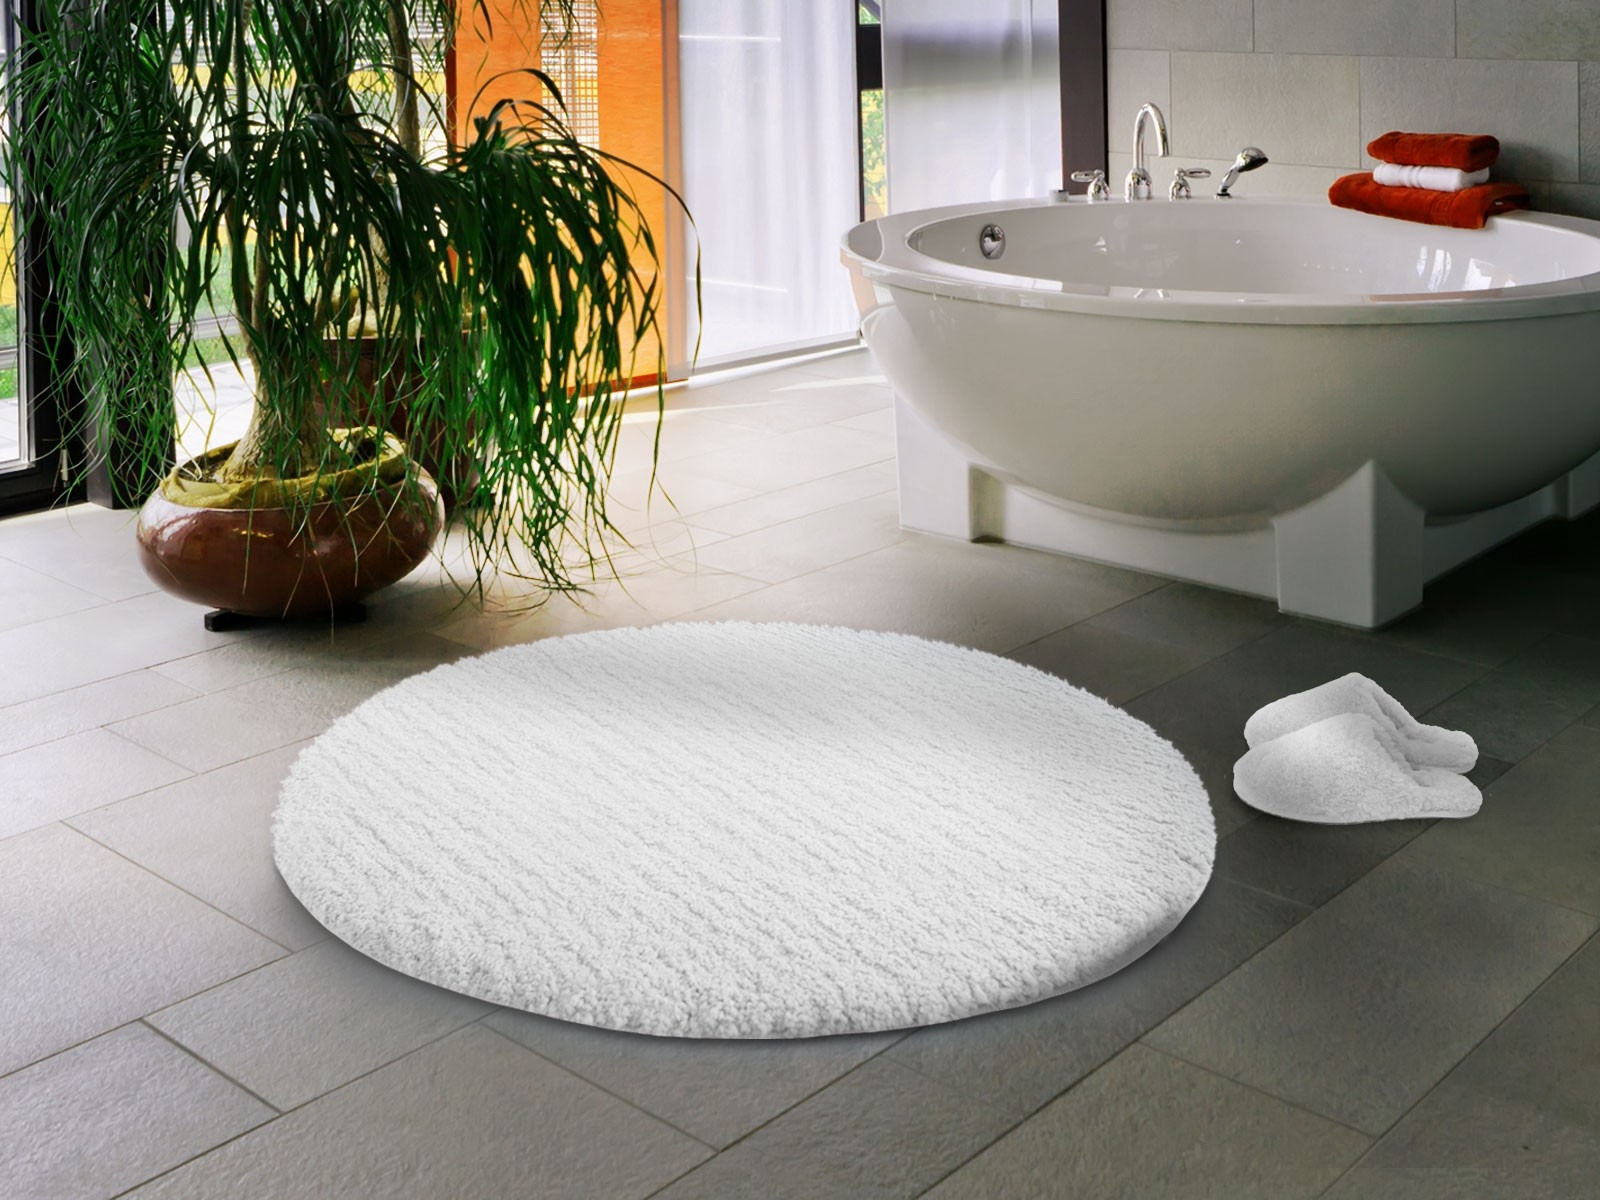 Permalink to Compare Extra Large Bath Mat